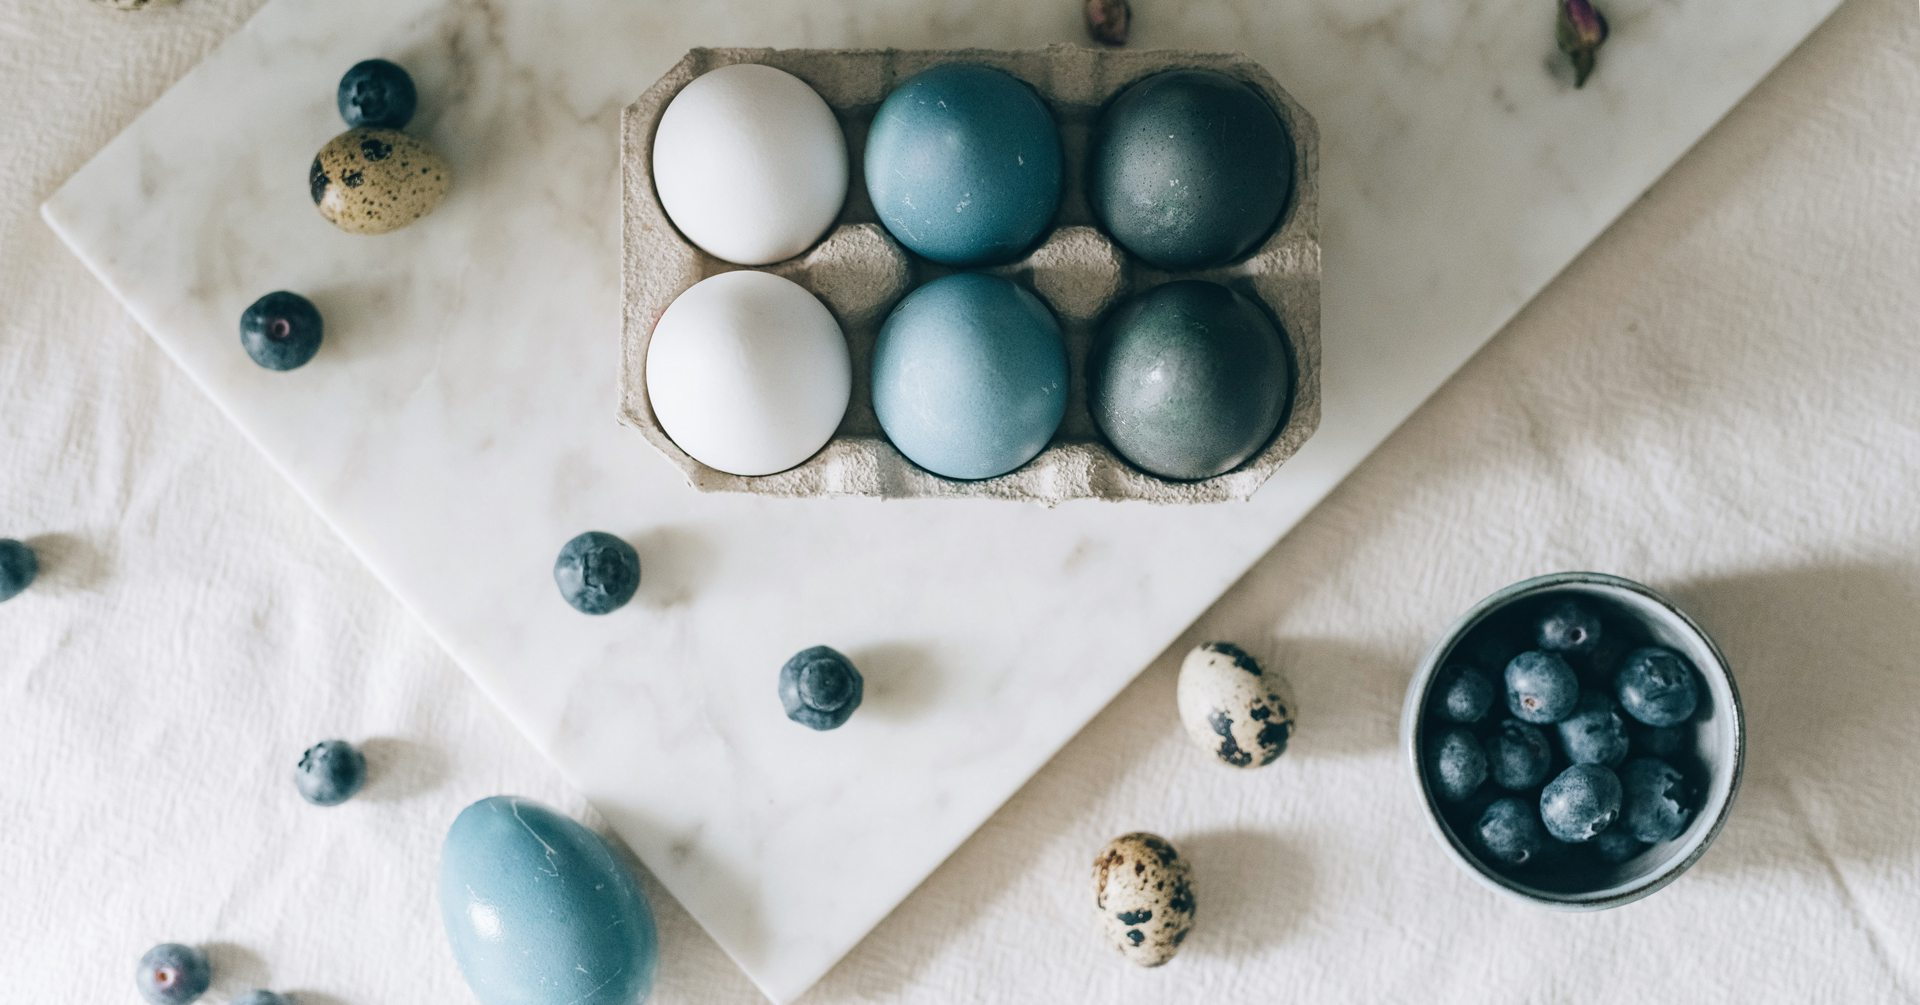 Naturally Dyed Easter Eggs Workshop